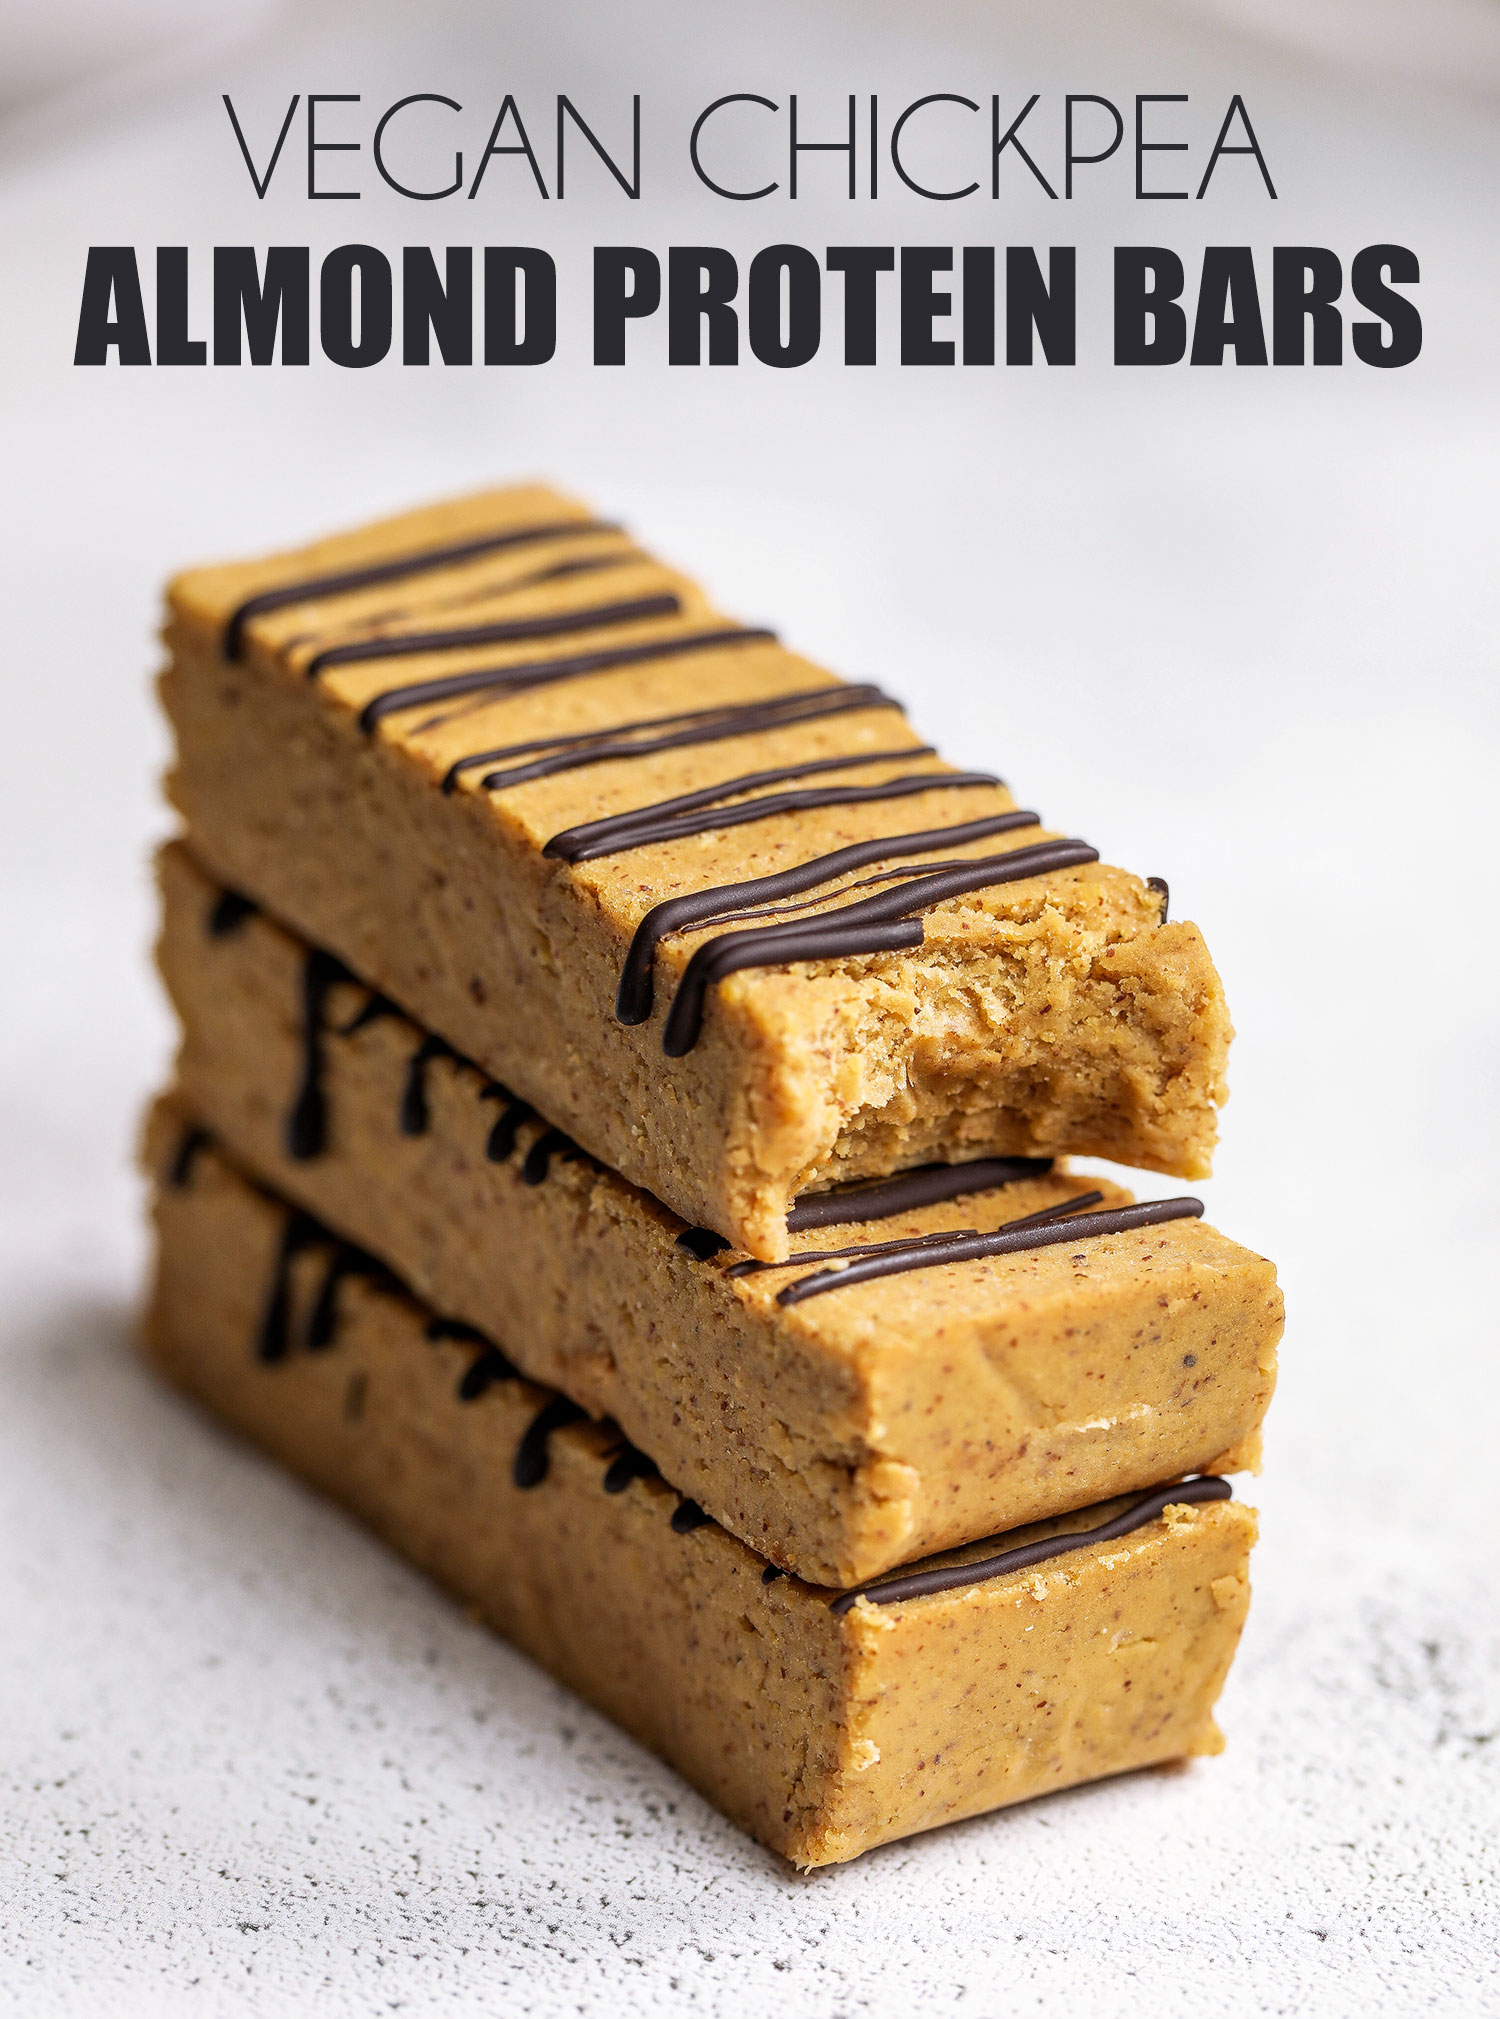 Vegan Chickpea Almond Protein Bars